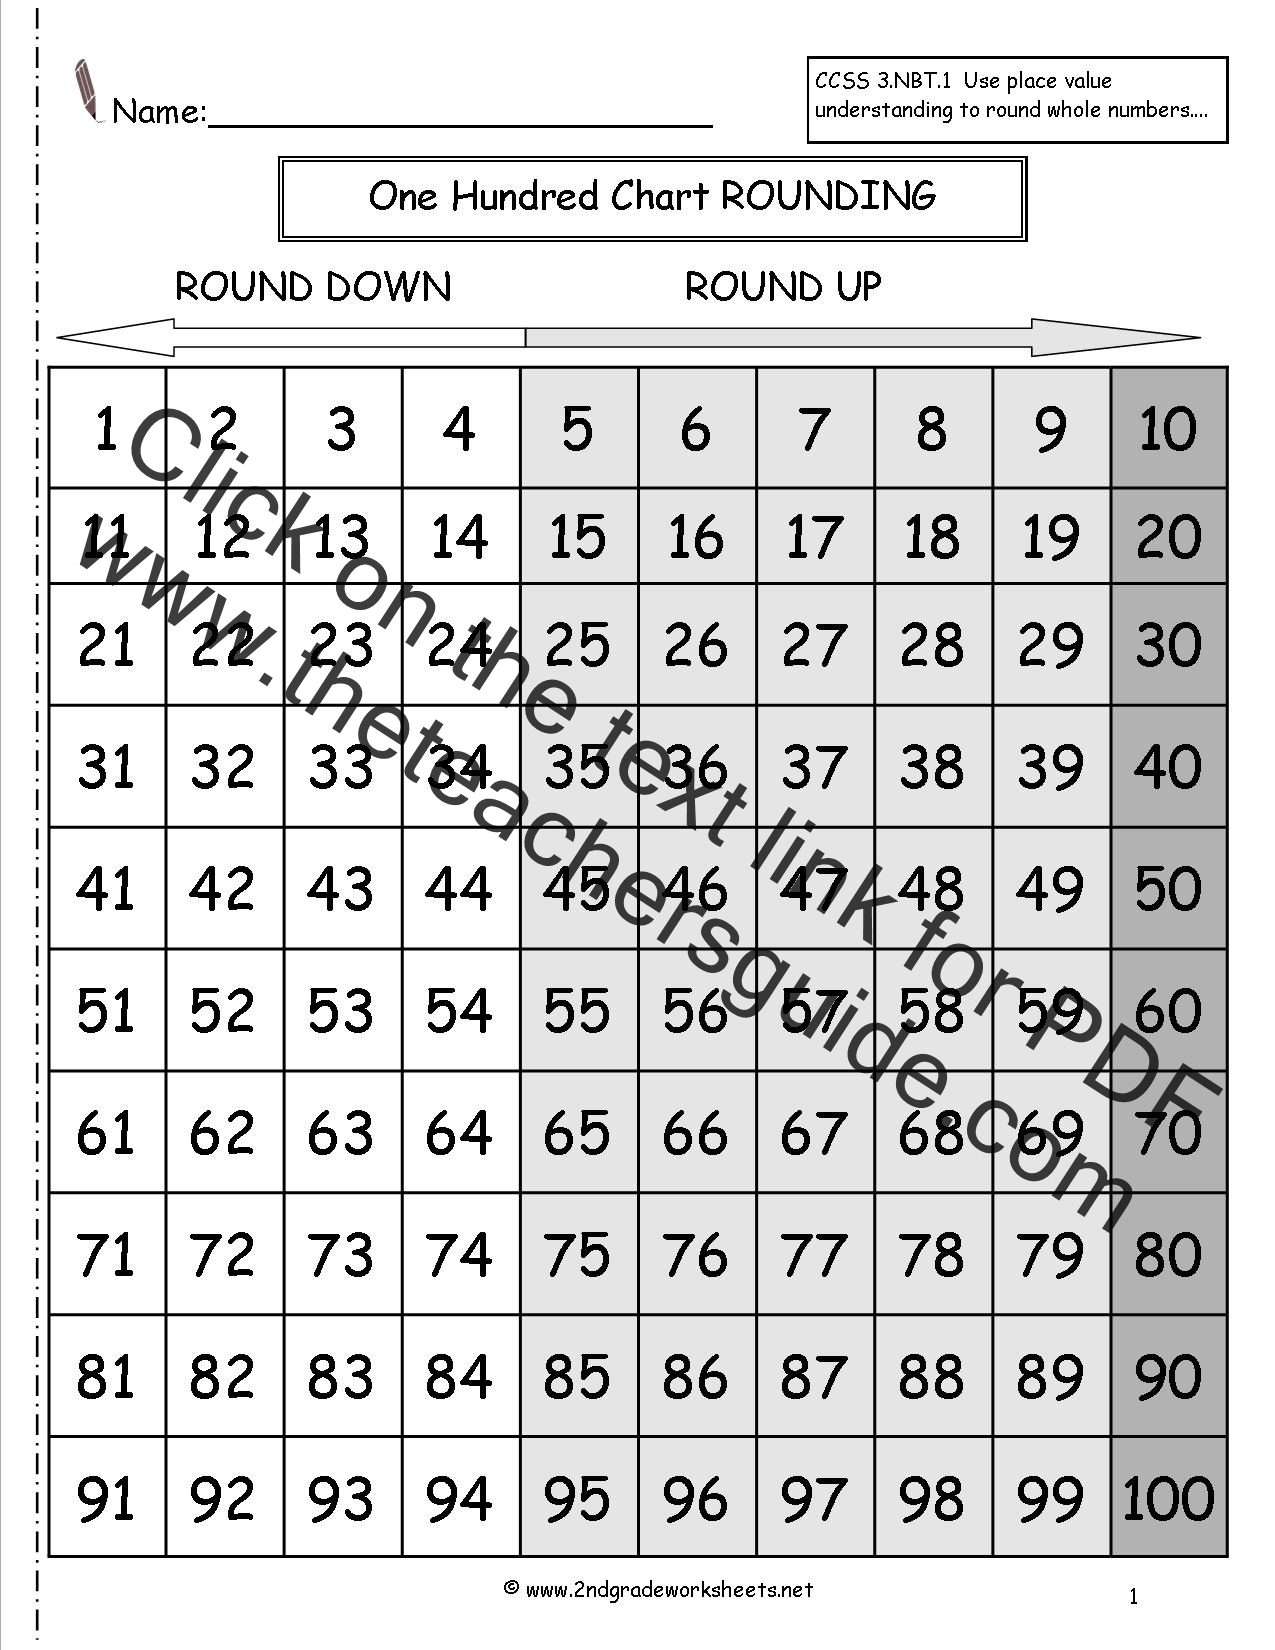 worksheet Rounding Numbers To The Nearest Ten Worksheets rounding whole numbers worksheets one hundred chart worksheet